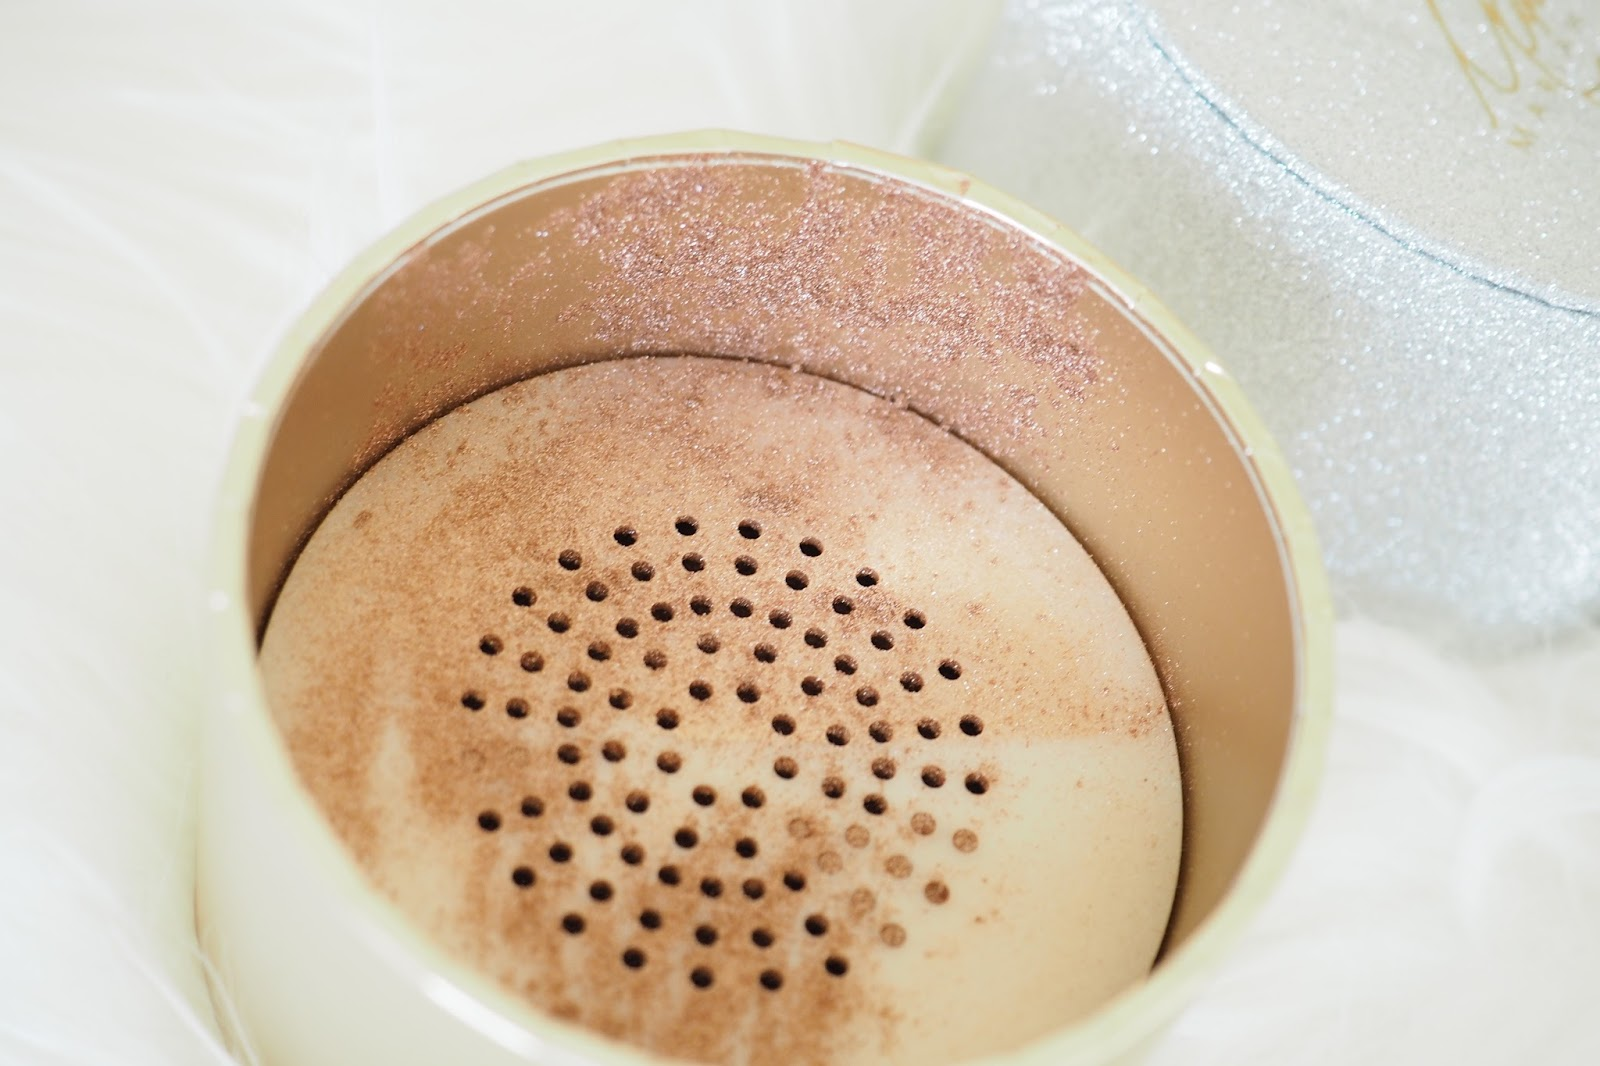 MAC Mariah Carey Touch My Body Powder Review & Swatches